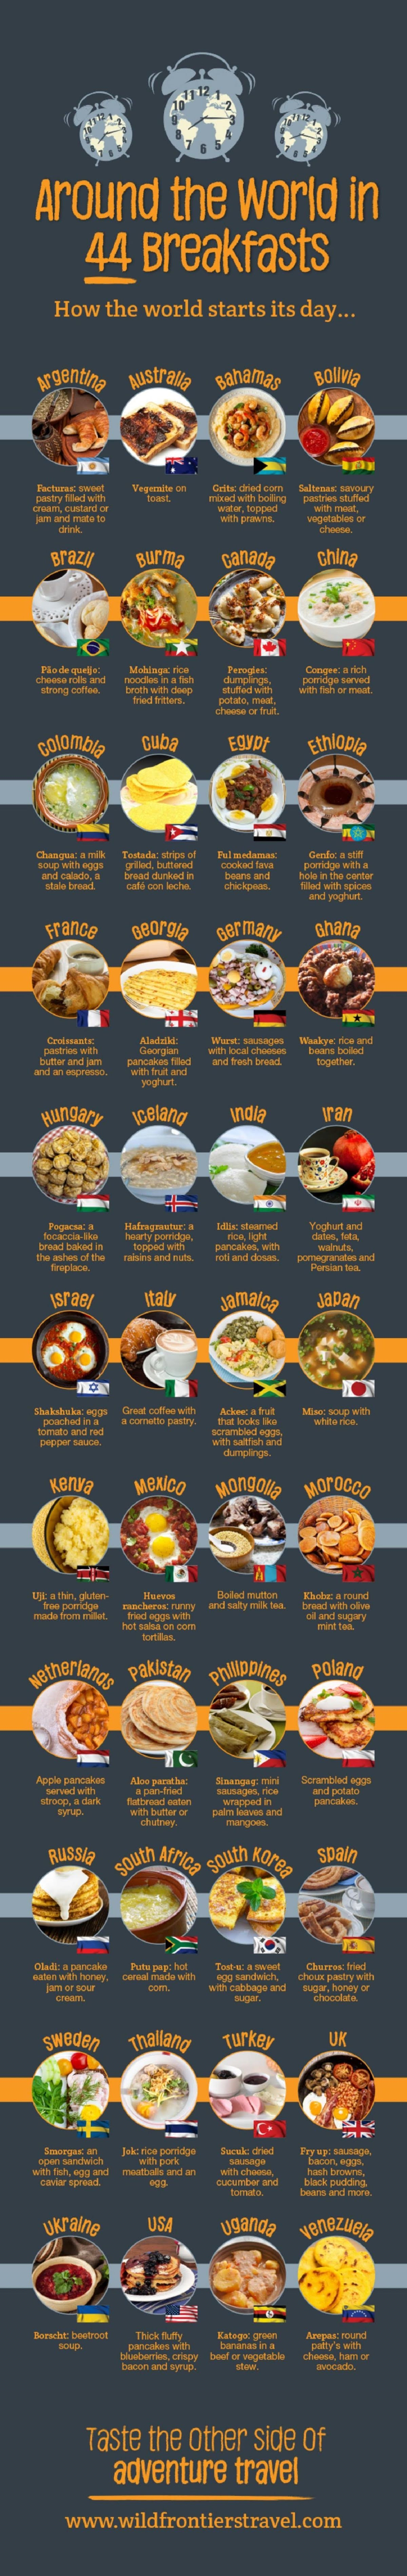 breakfast-around-the-world-infographic